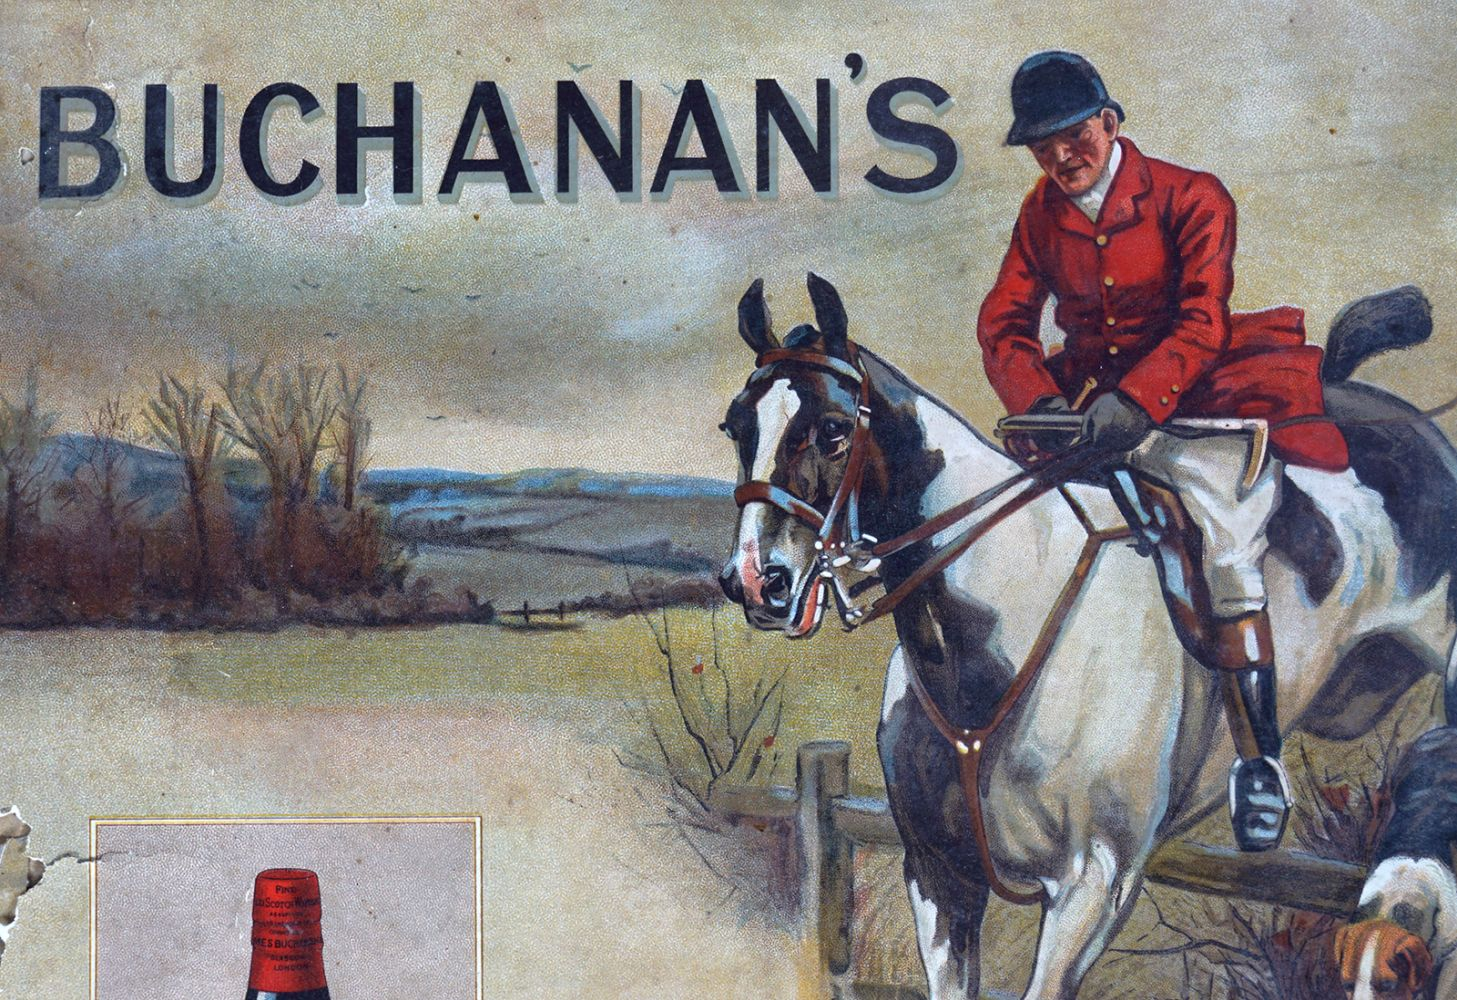 BUCHANAN'S 'RED SEAL' SCOTCH WHISKY POSTER - Image 2 of 4